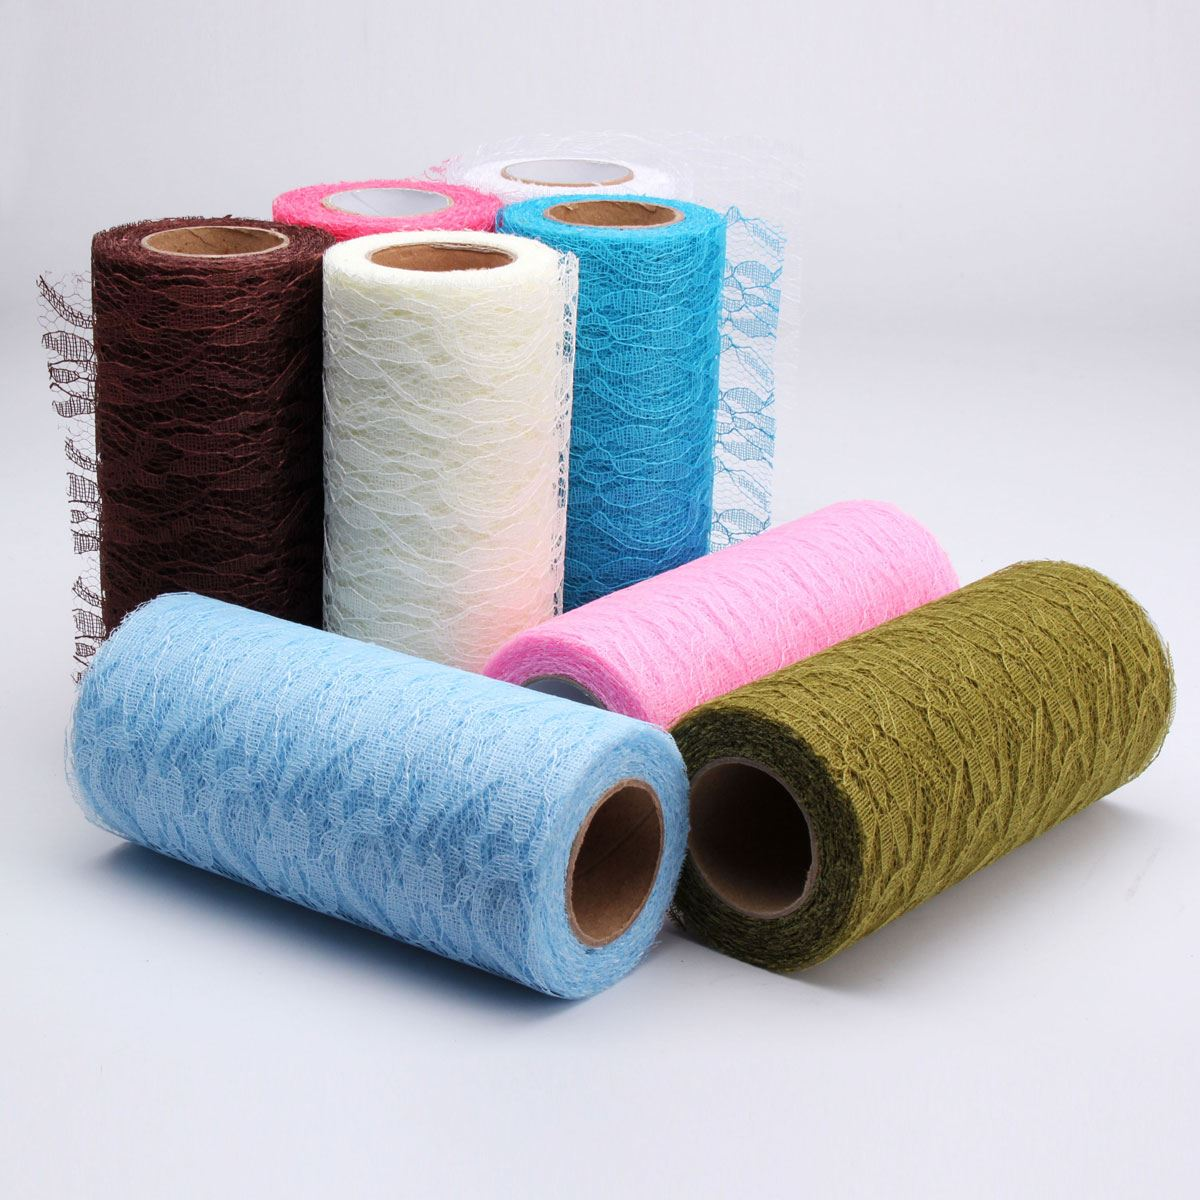 Colorful Tissue Tulle Paper Roll For Wedding Party Table Runner Chair Decor Sash Tutu 910X15cm DIY Gift Wrap Craft(China (Mainland))